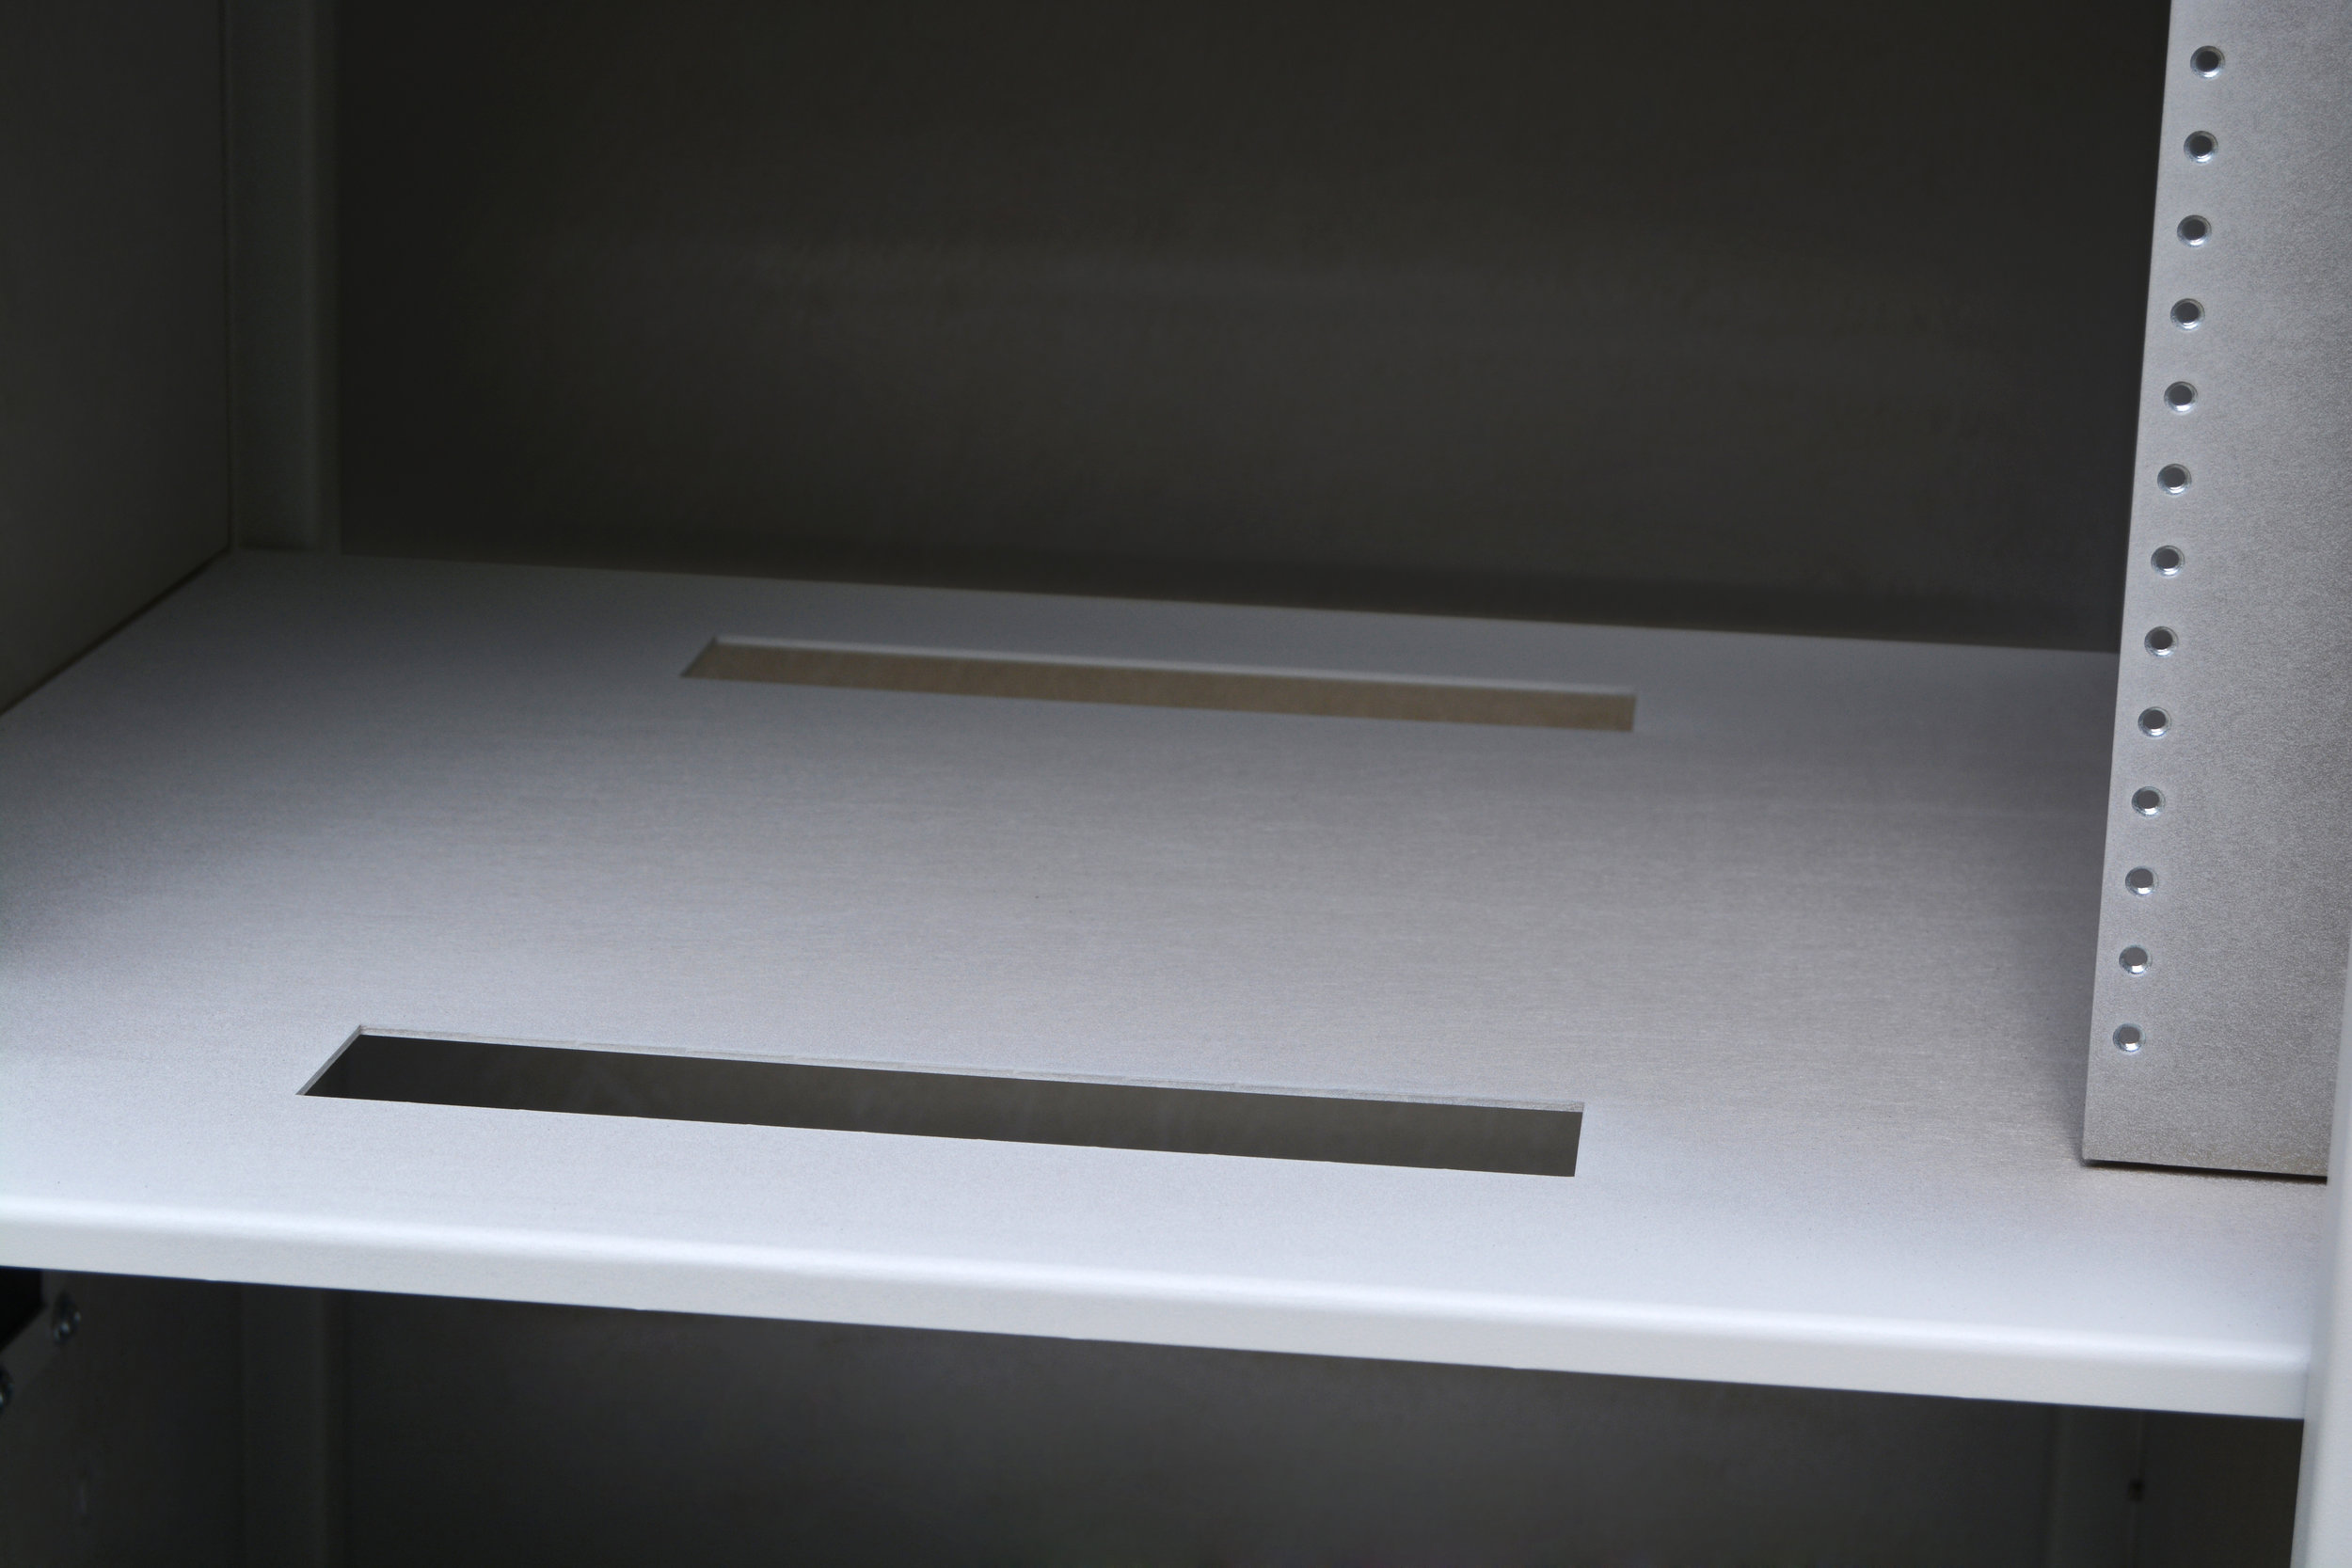 A dividing shelf splits the enclosure in two allowing for the separation of necessary equipment. We cut two cable passthrough options, one in front and one in back for easy access to cable feeds.